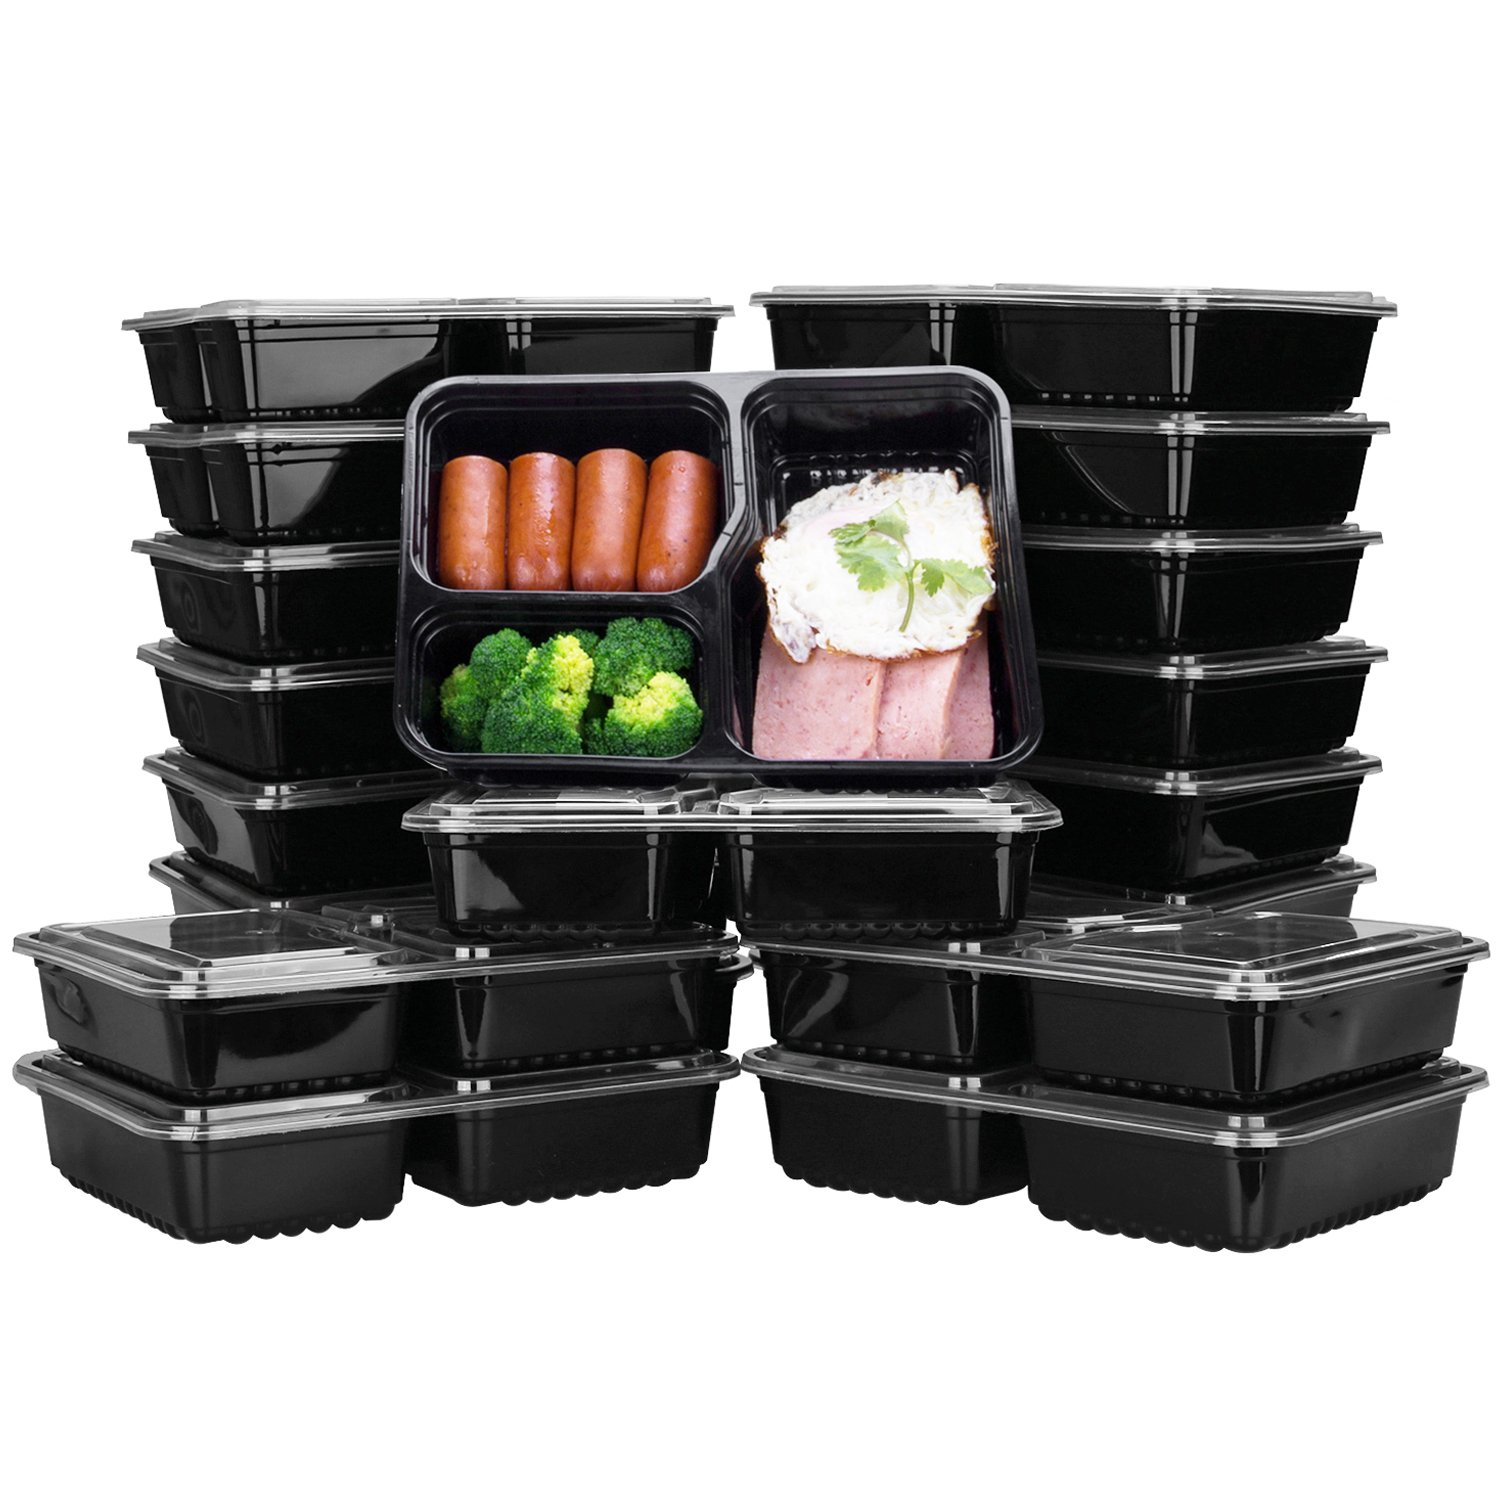 Meal Prep Containers 3 Compartment, Mayetori Reusable [20 Pack] Food Prep Containers with Lids, BPA Free Lunch bento Box, Microwave, Dishwasher and Freezer Safe(32OZ)